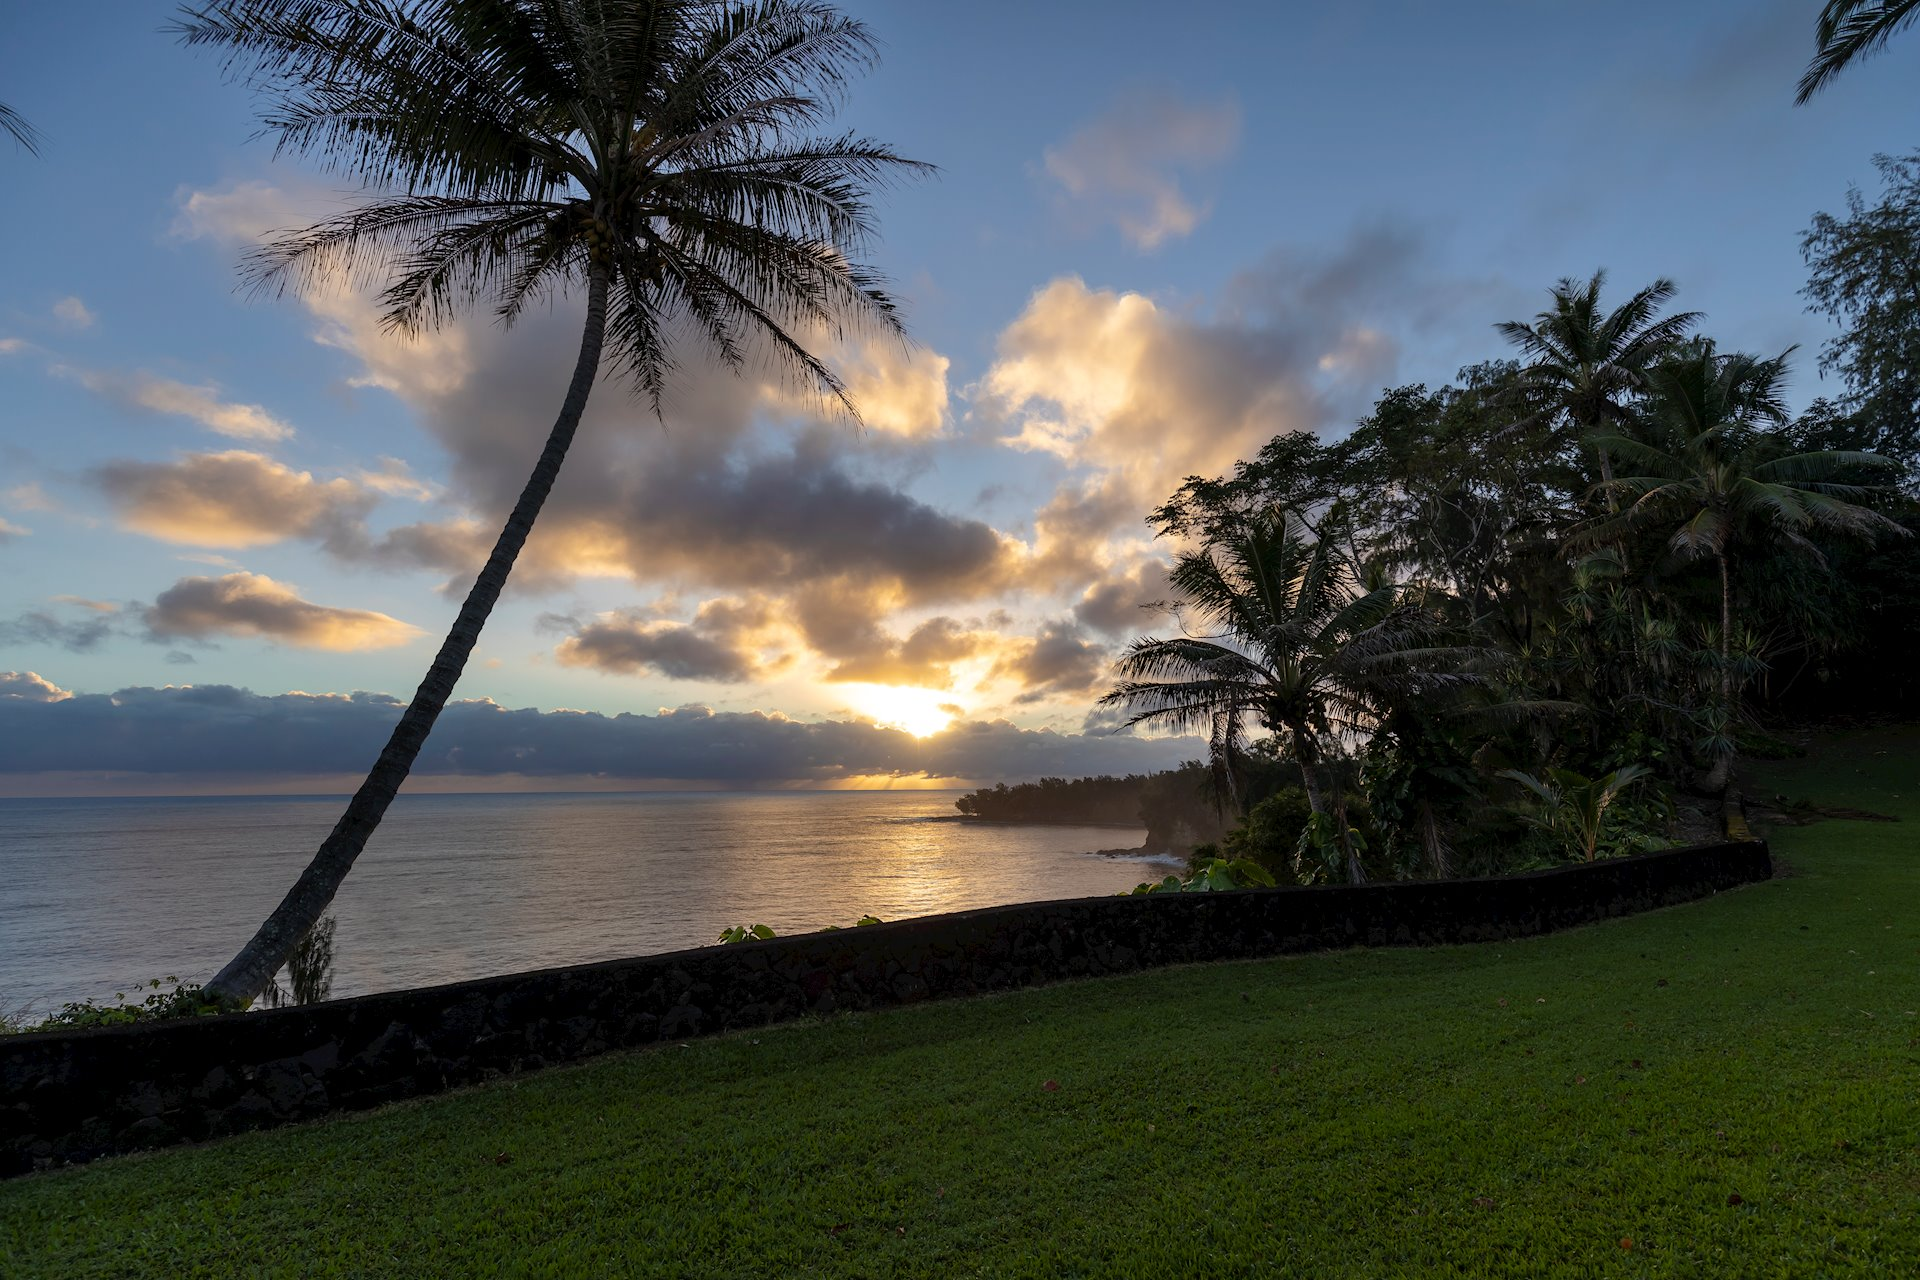 The quintessential postcard image of Hawaii from the backyard.